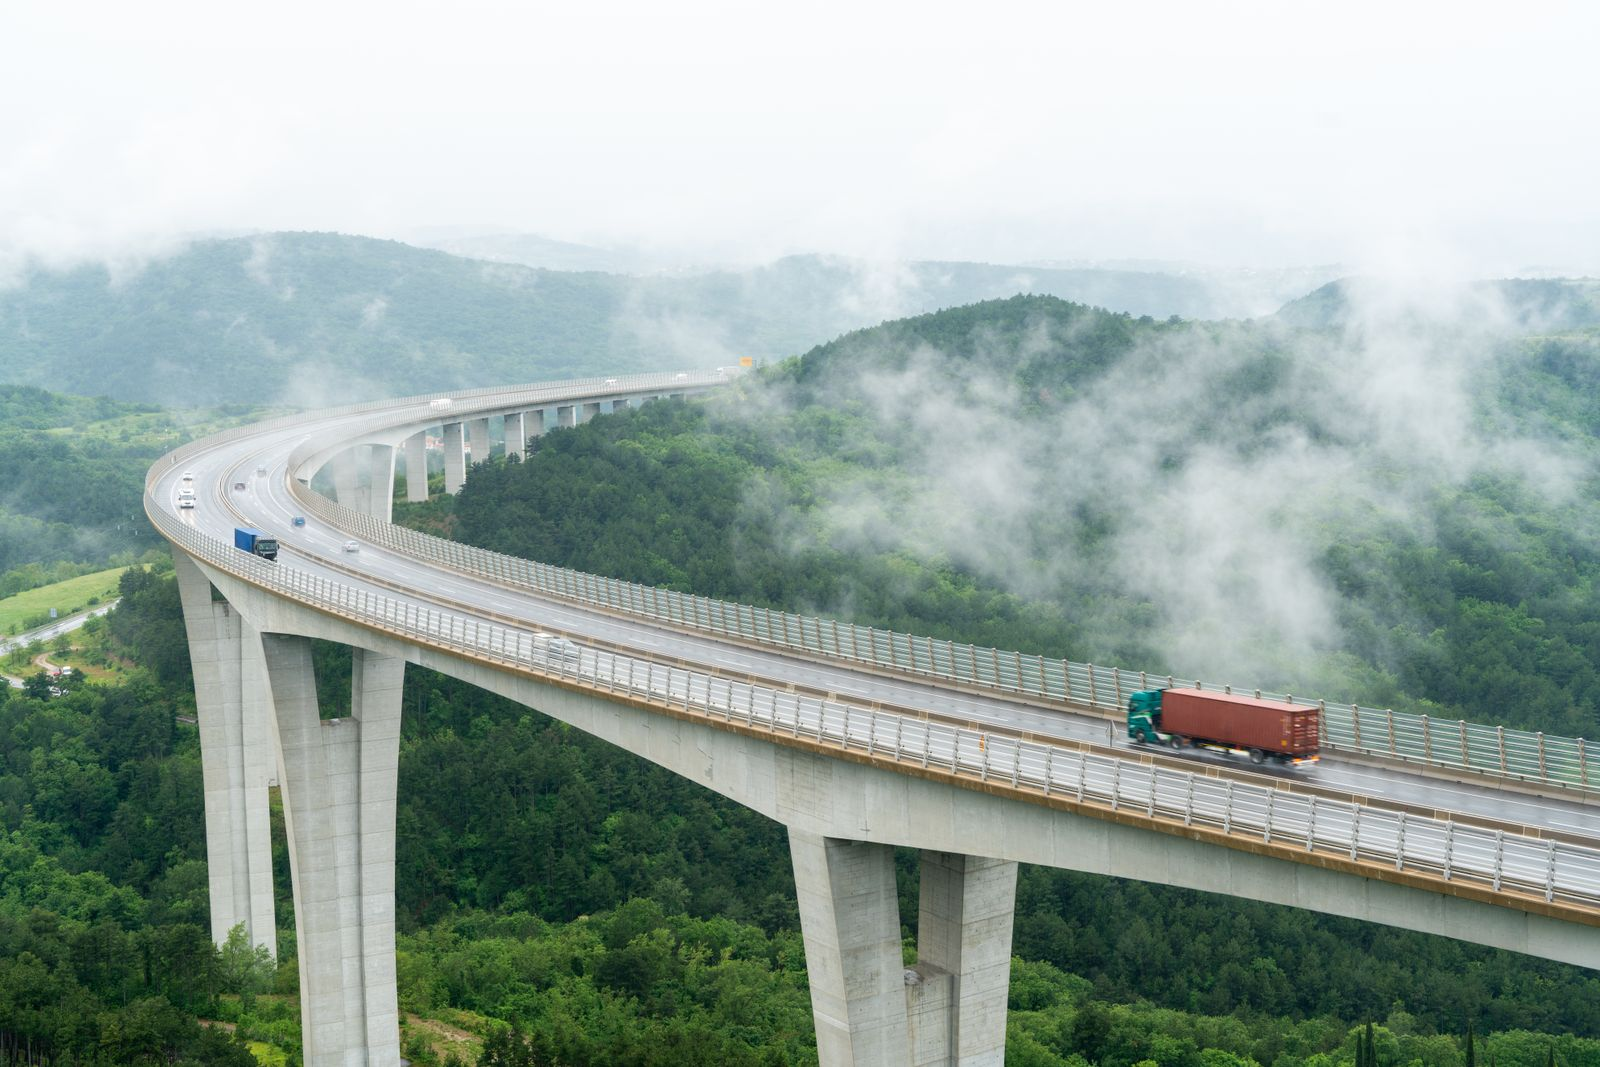 Aerial view of trucks on viaduct and hills in background in fog, Crni Kal, Littoral region, Slovenia